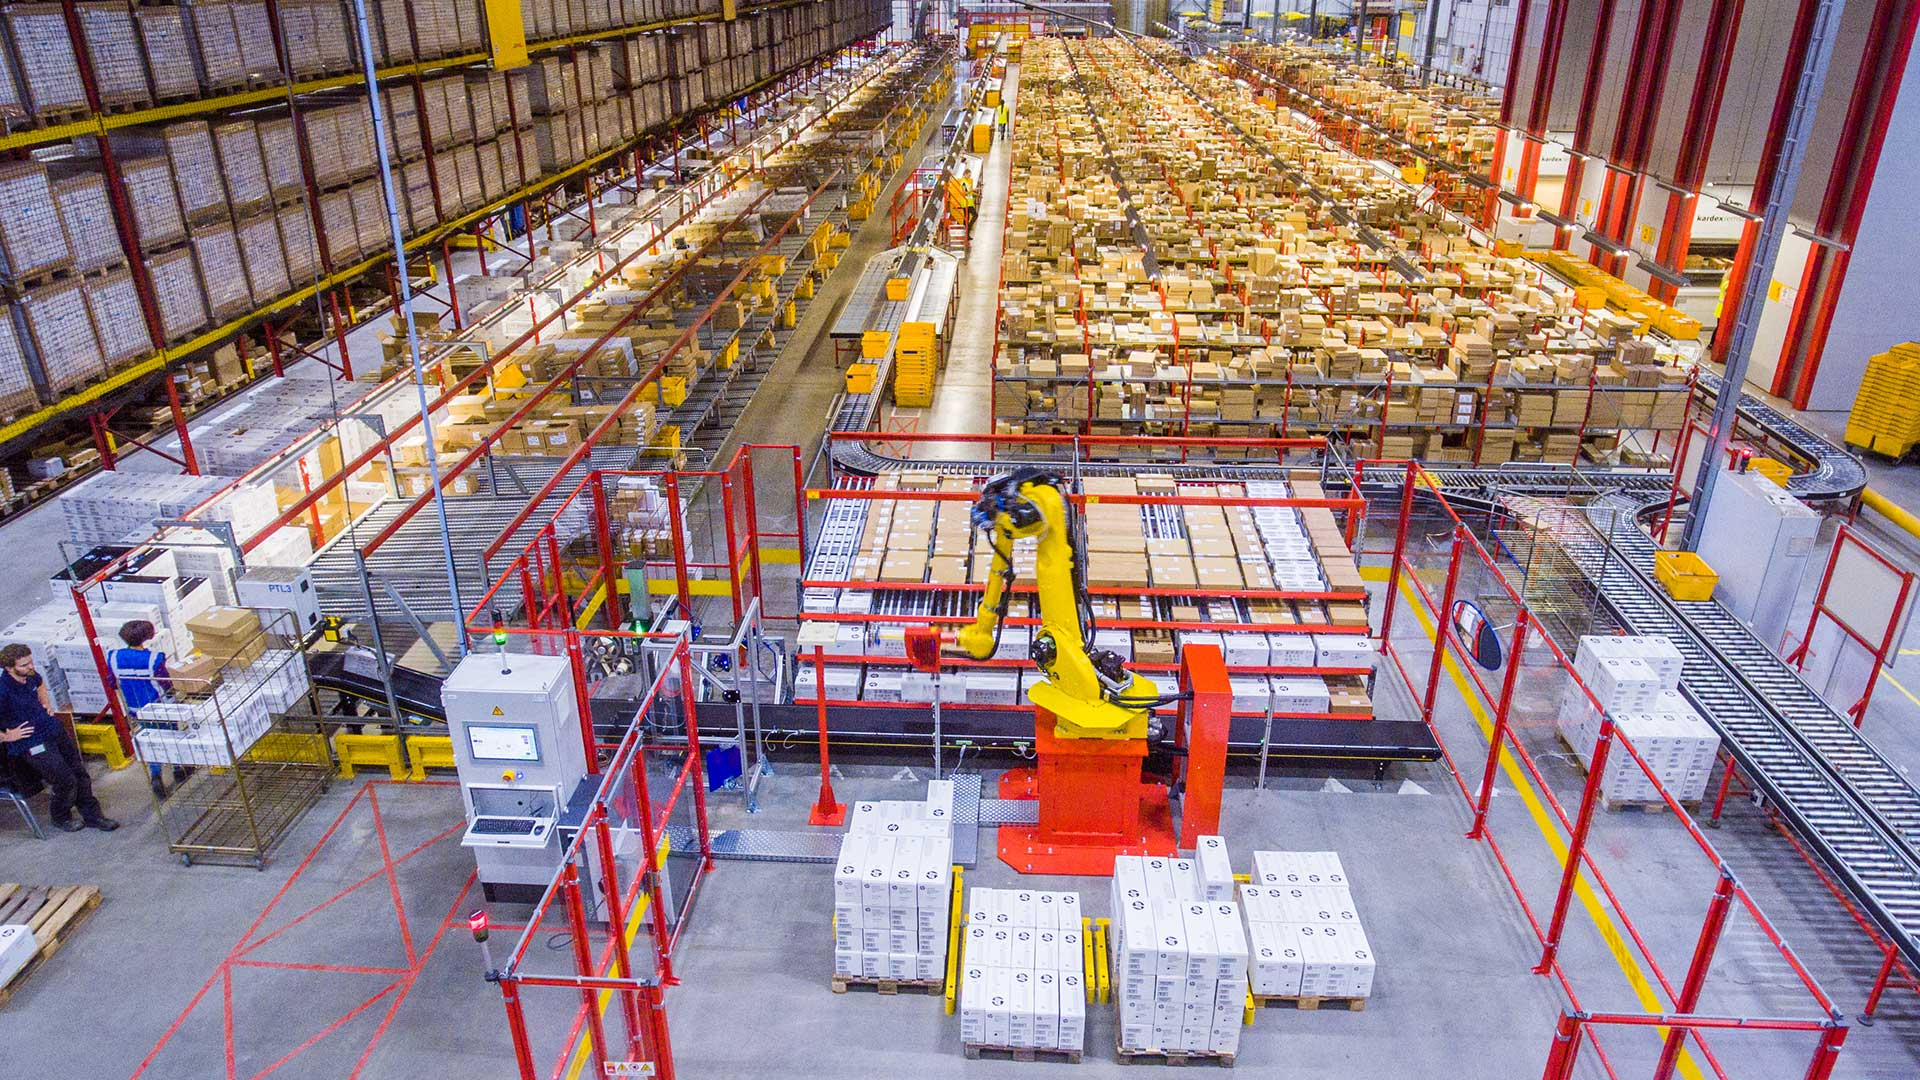 DHL-warehouse-logistics-overview.jpg